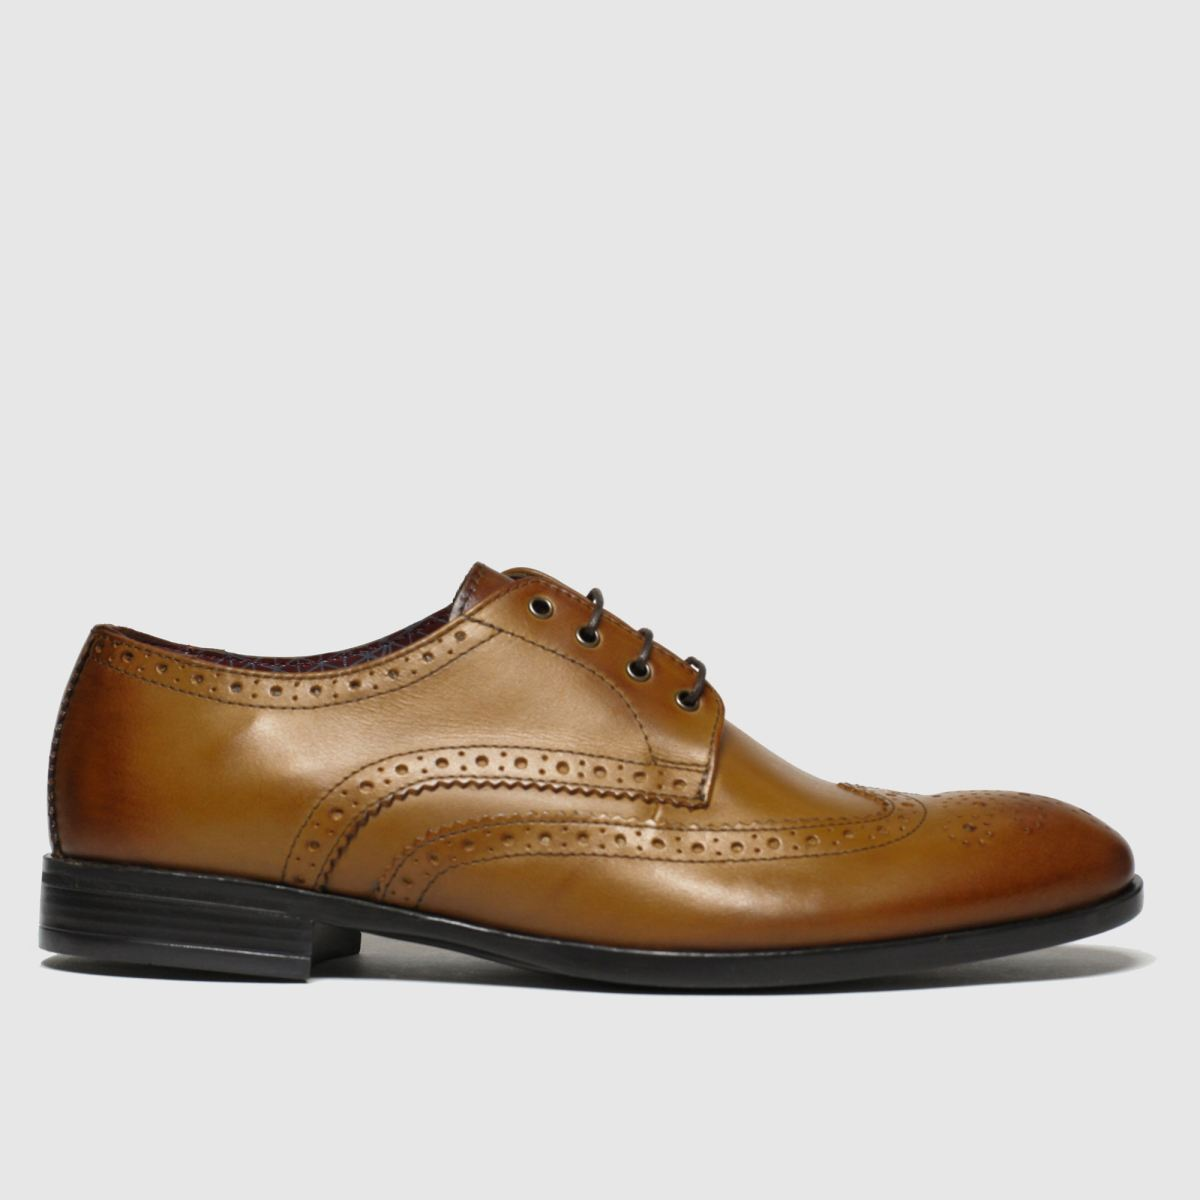 Schuh Tan Brunel Brogue Shoes